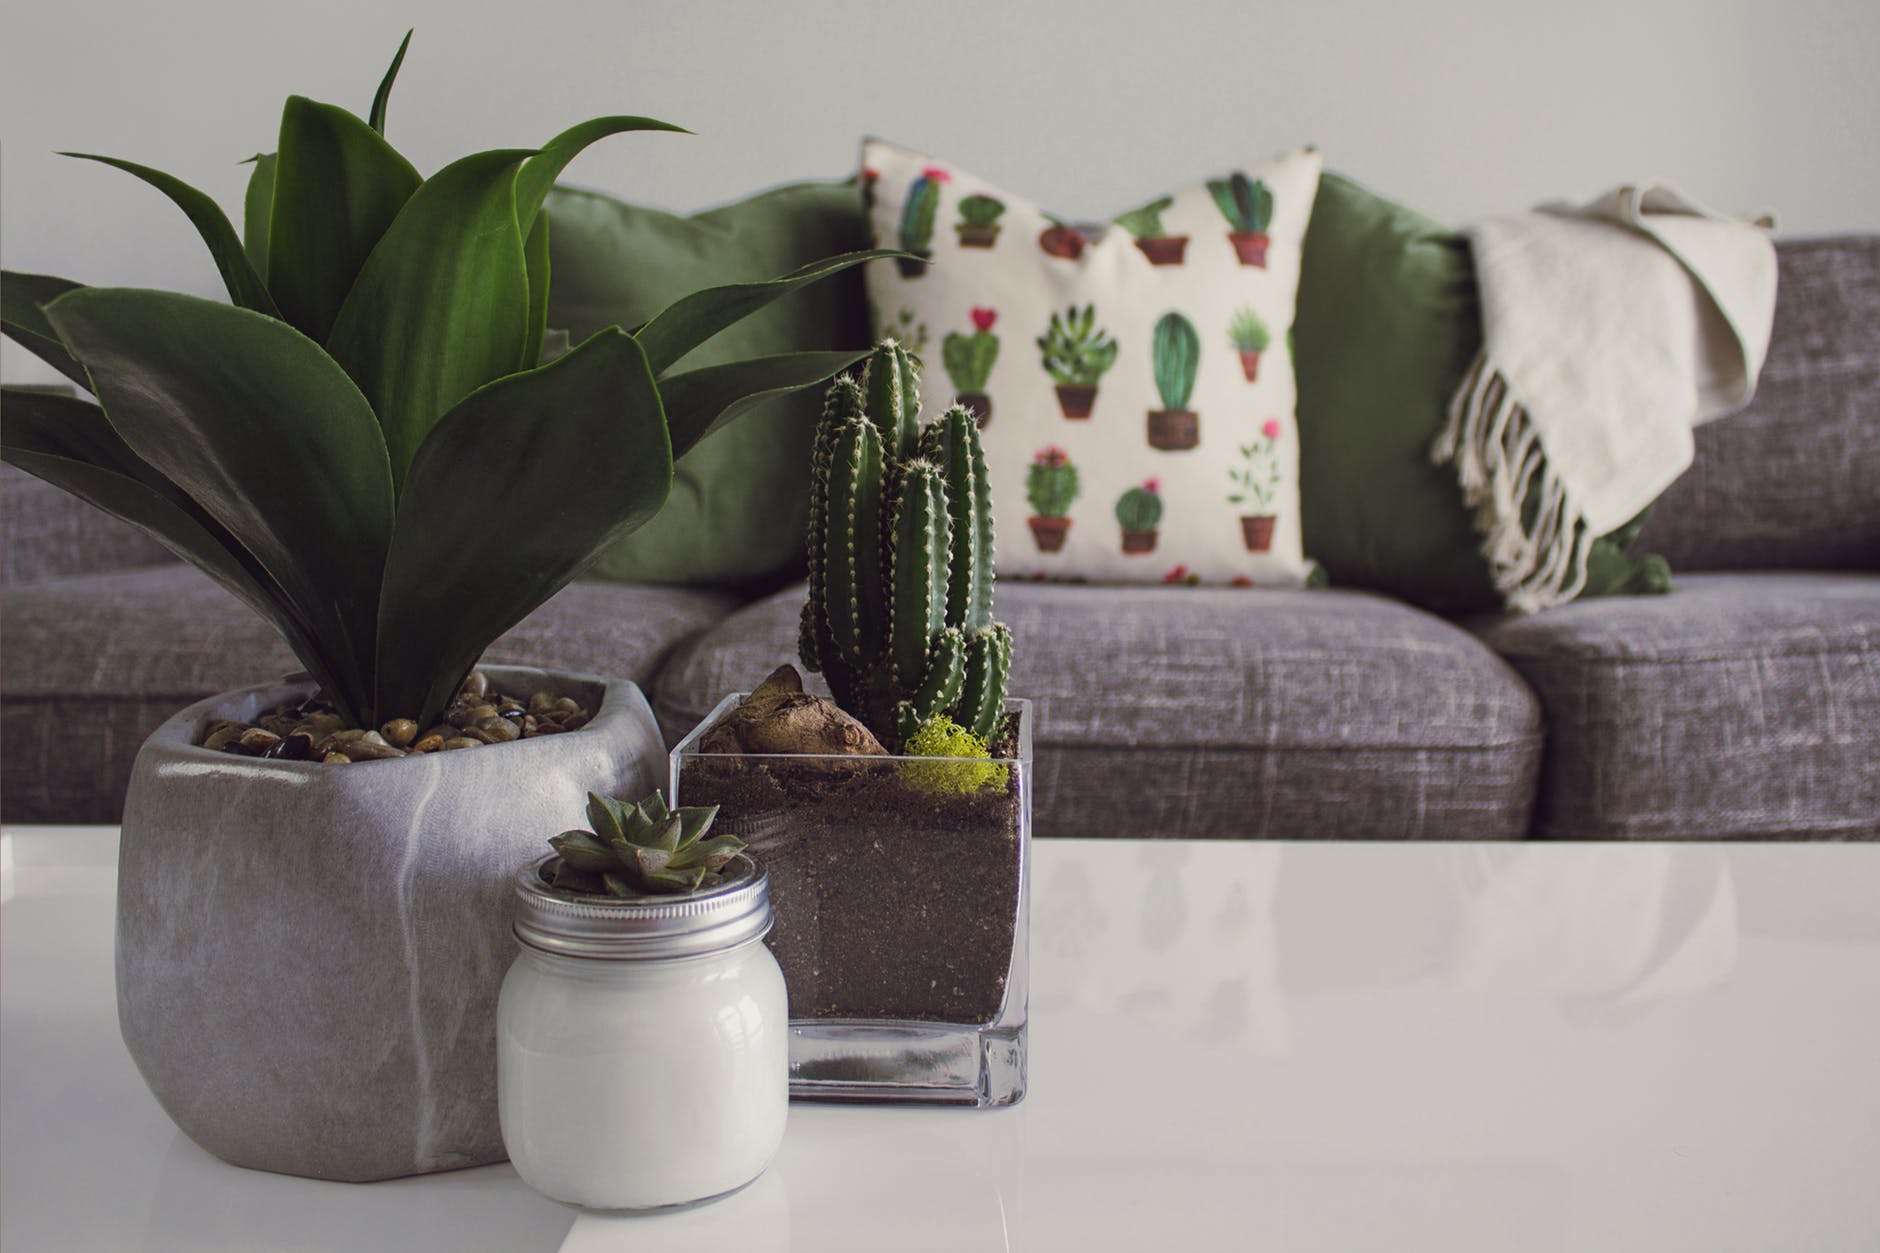 photo of plants on the table